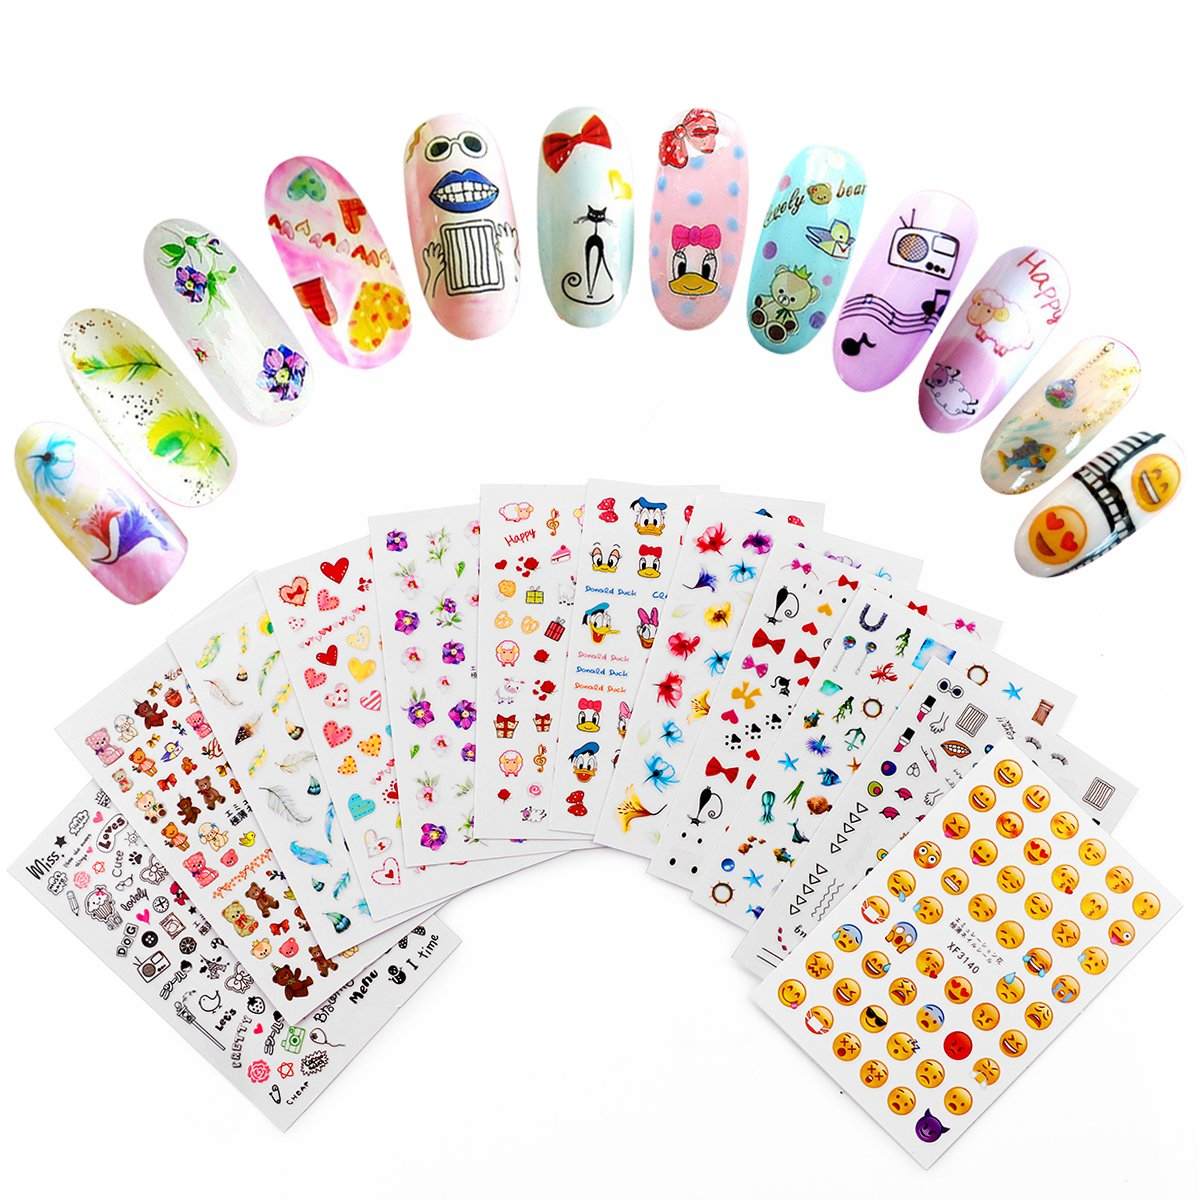 MAKARTT 3D Nail Art Stickers 12 Sheets Self-adhesive Nail Decals Tip Mix Color Flower Decal Decoration